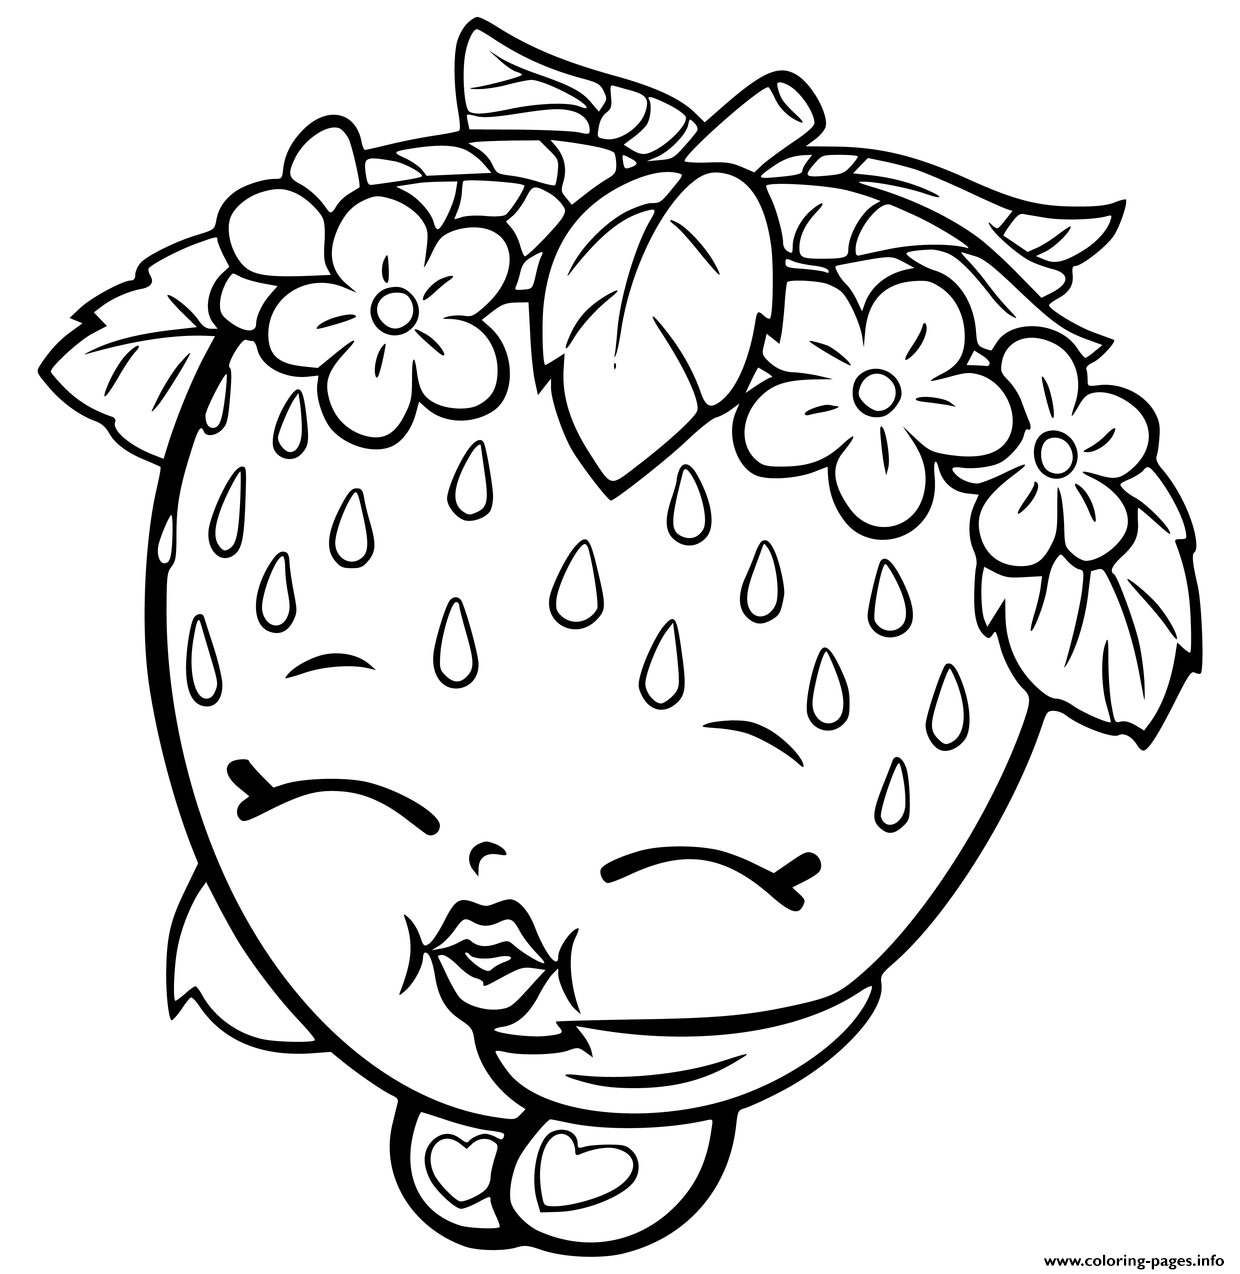 Coloring games of shopkins - Print Shopkins Strawberry Coloring Pages